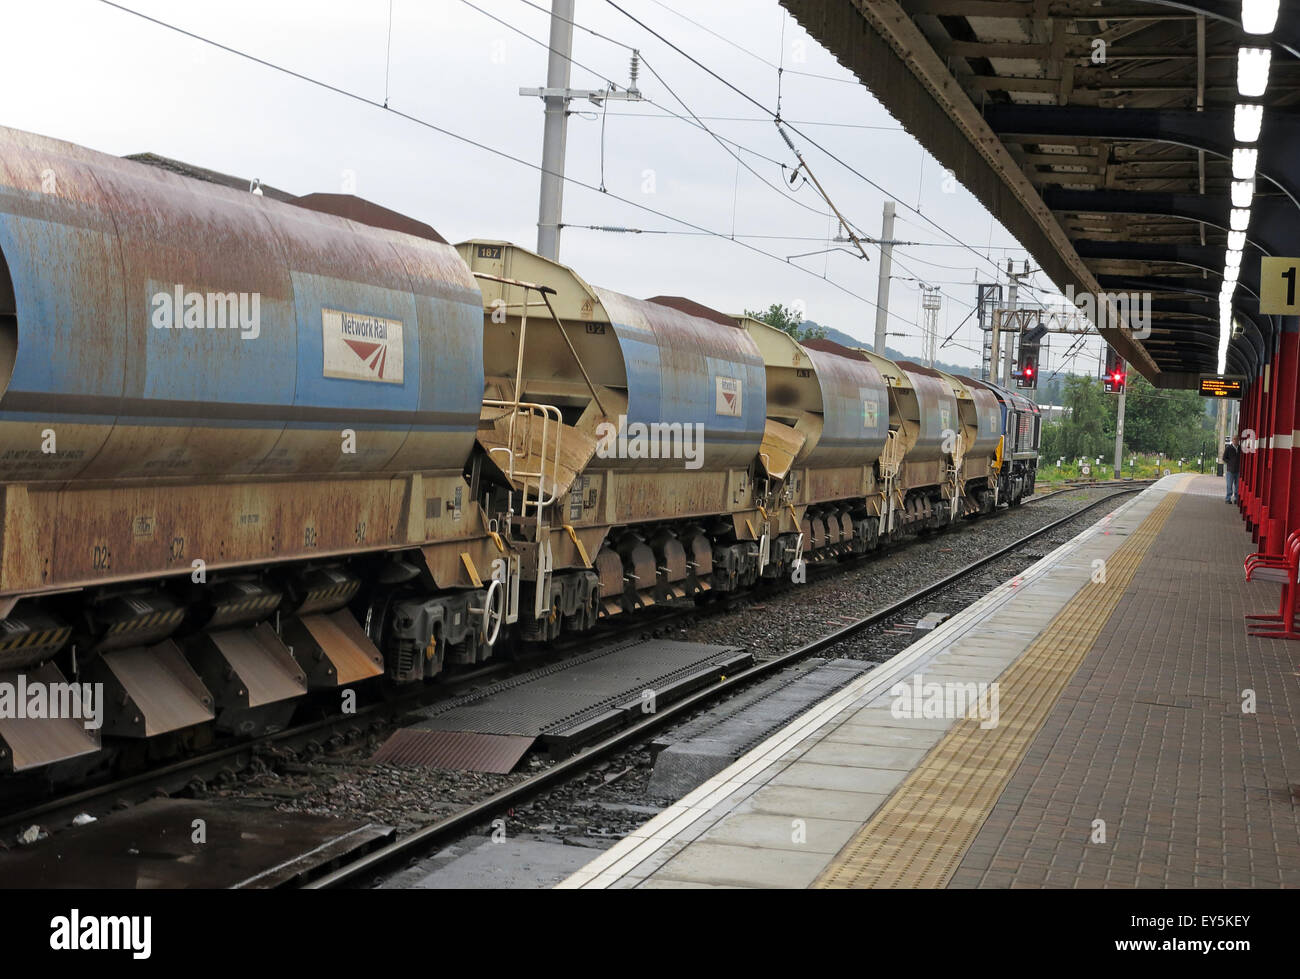 Railtrack railway Freight wagons at a red signal at Warrington Bank Quay Station, Cheshire, England, UK - Stock Image